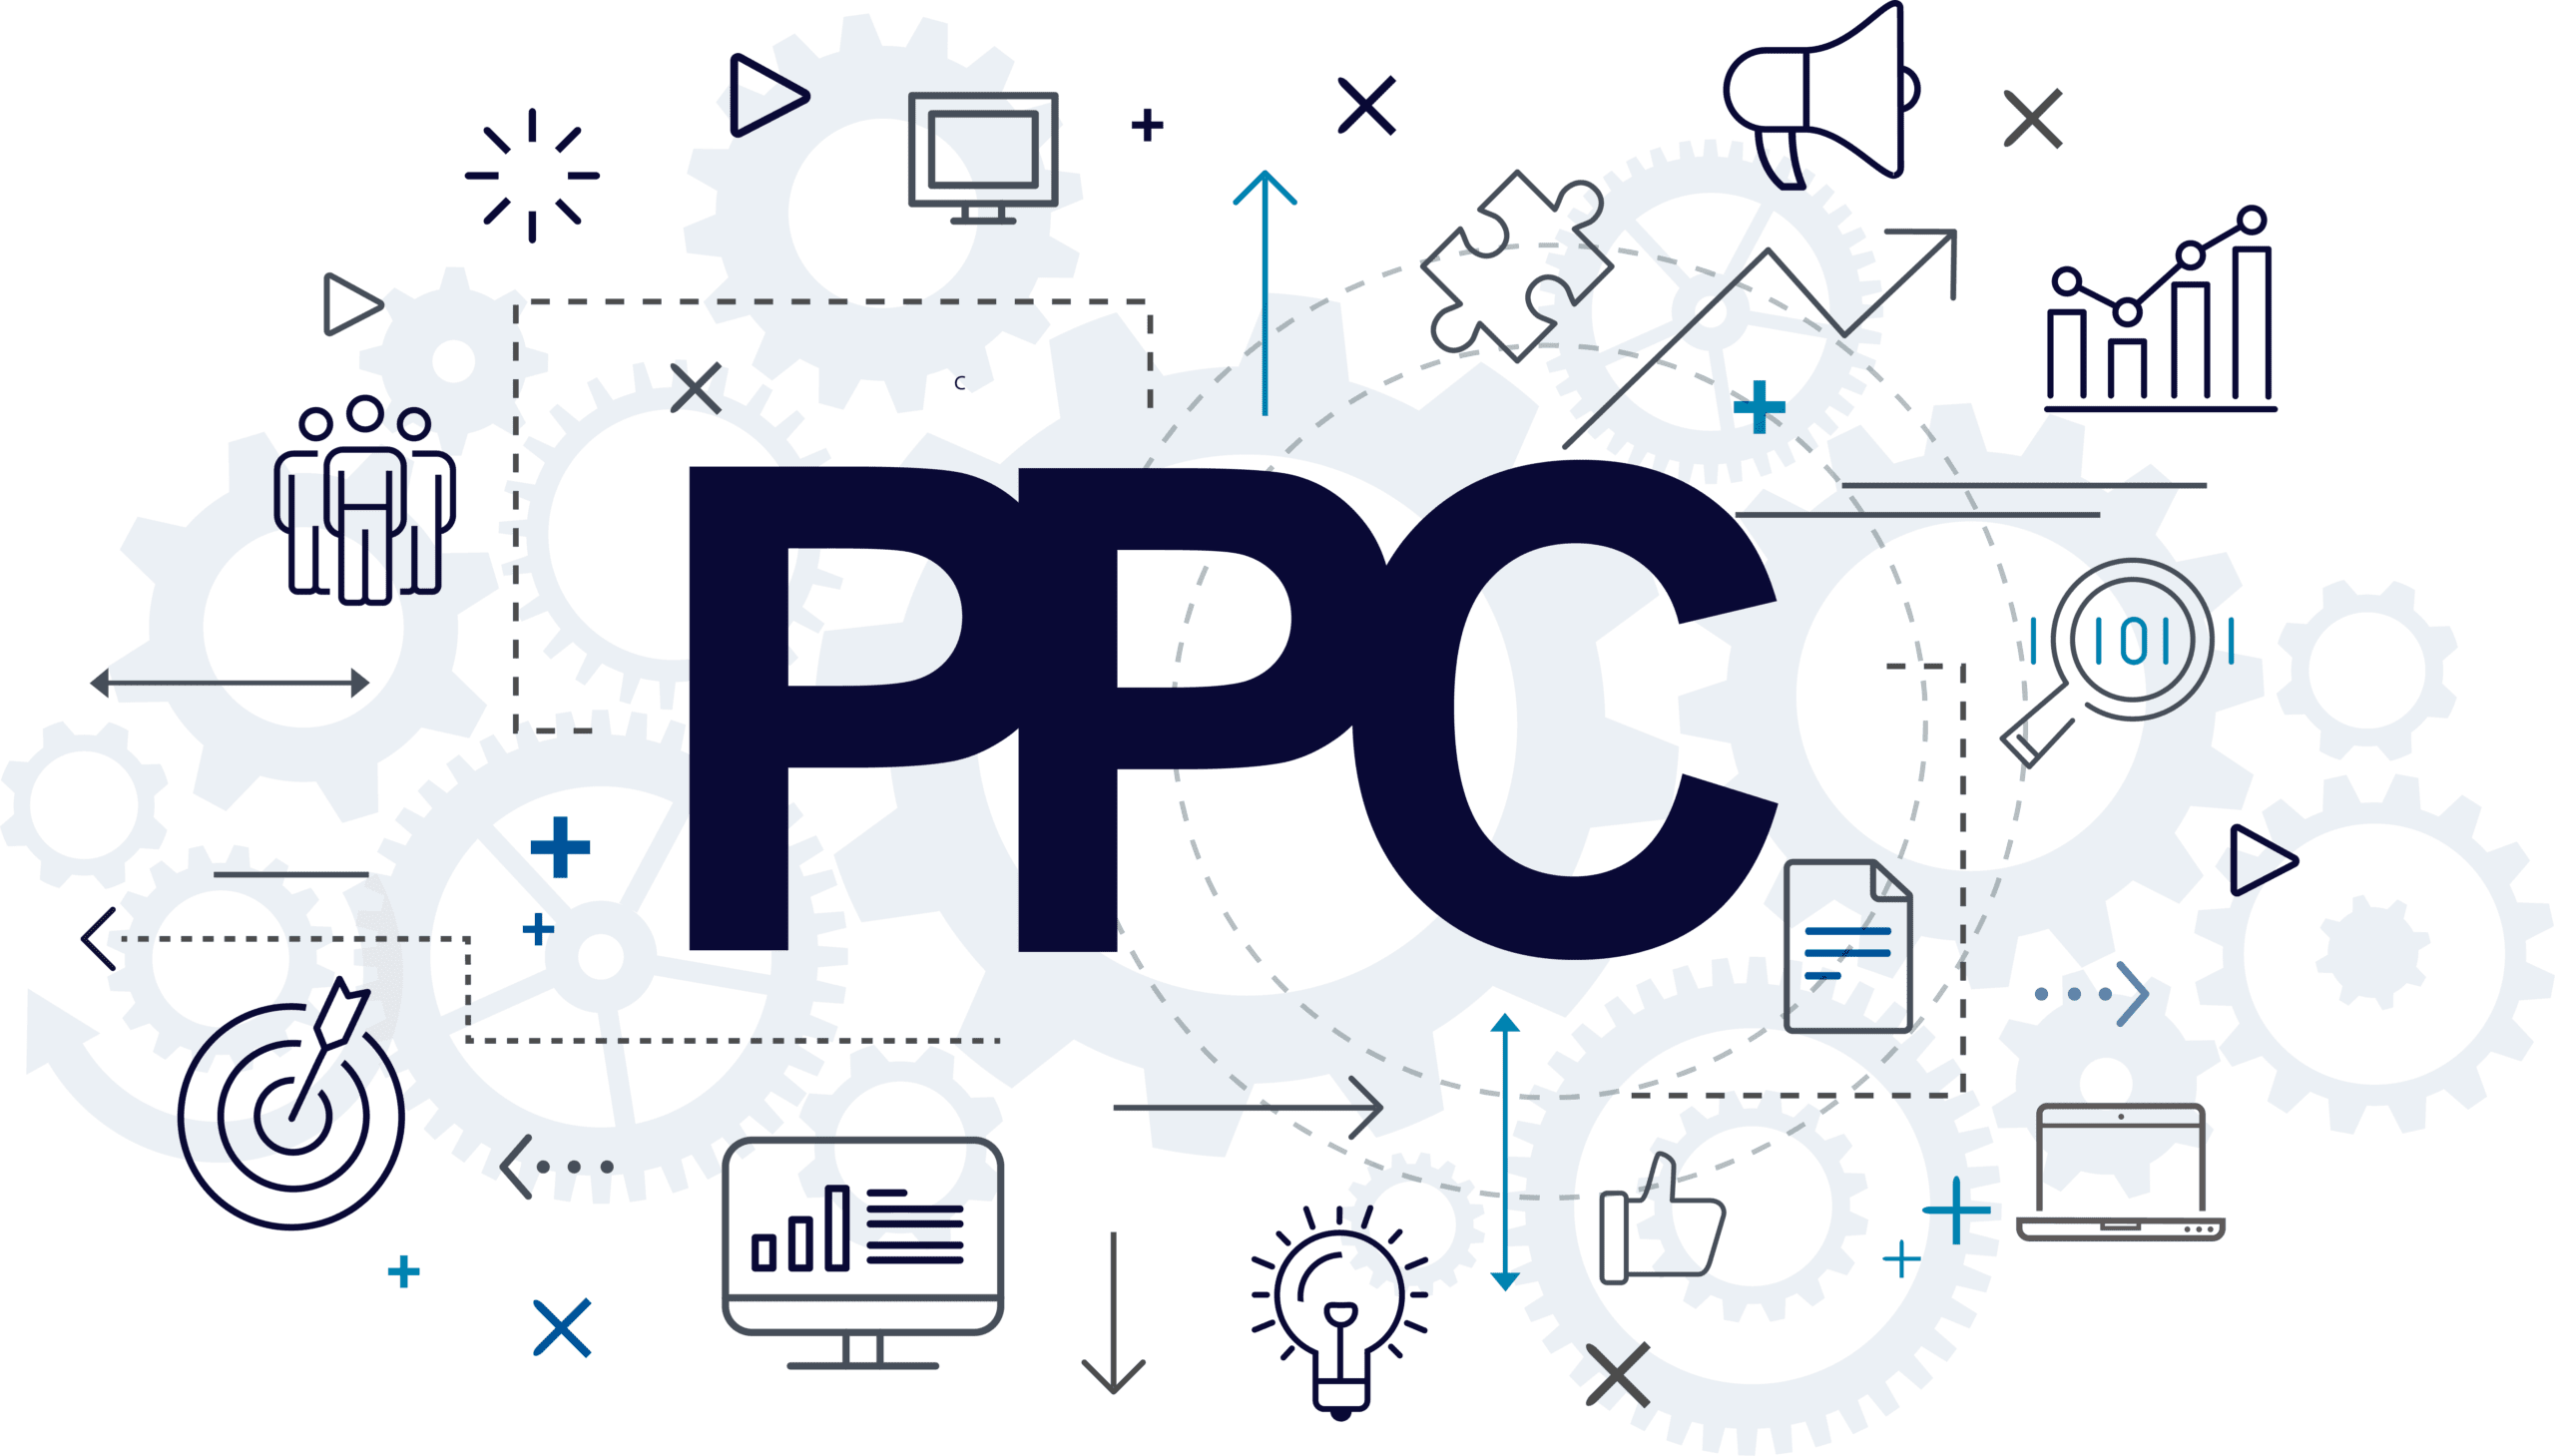 button graphic to learn more about ppc